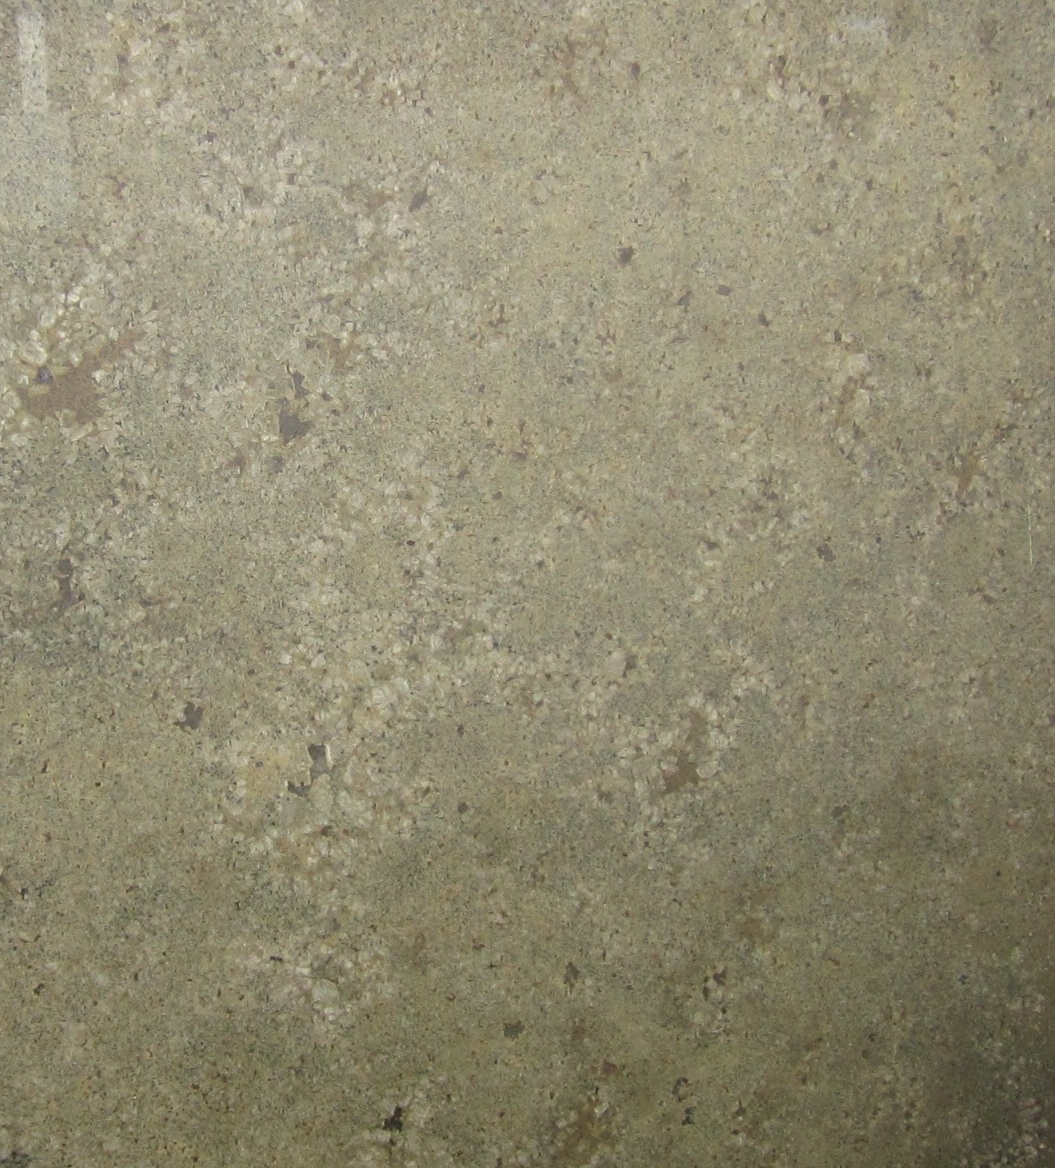 SEAFOAM GREEN GRANITE SLAB 30MM